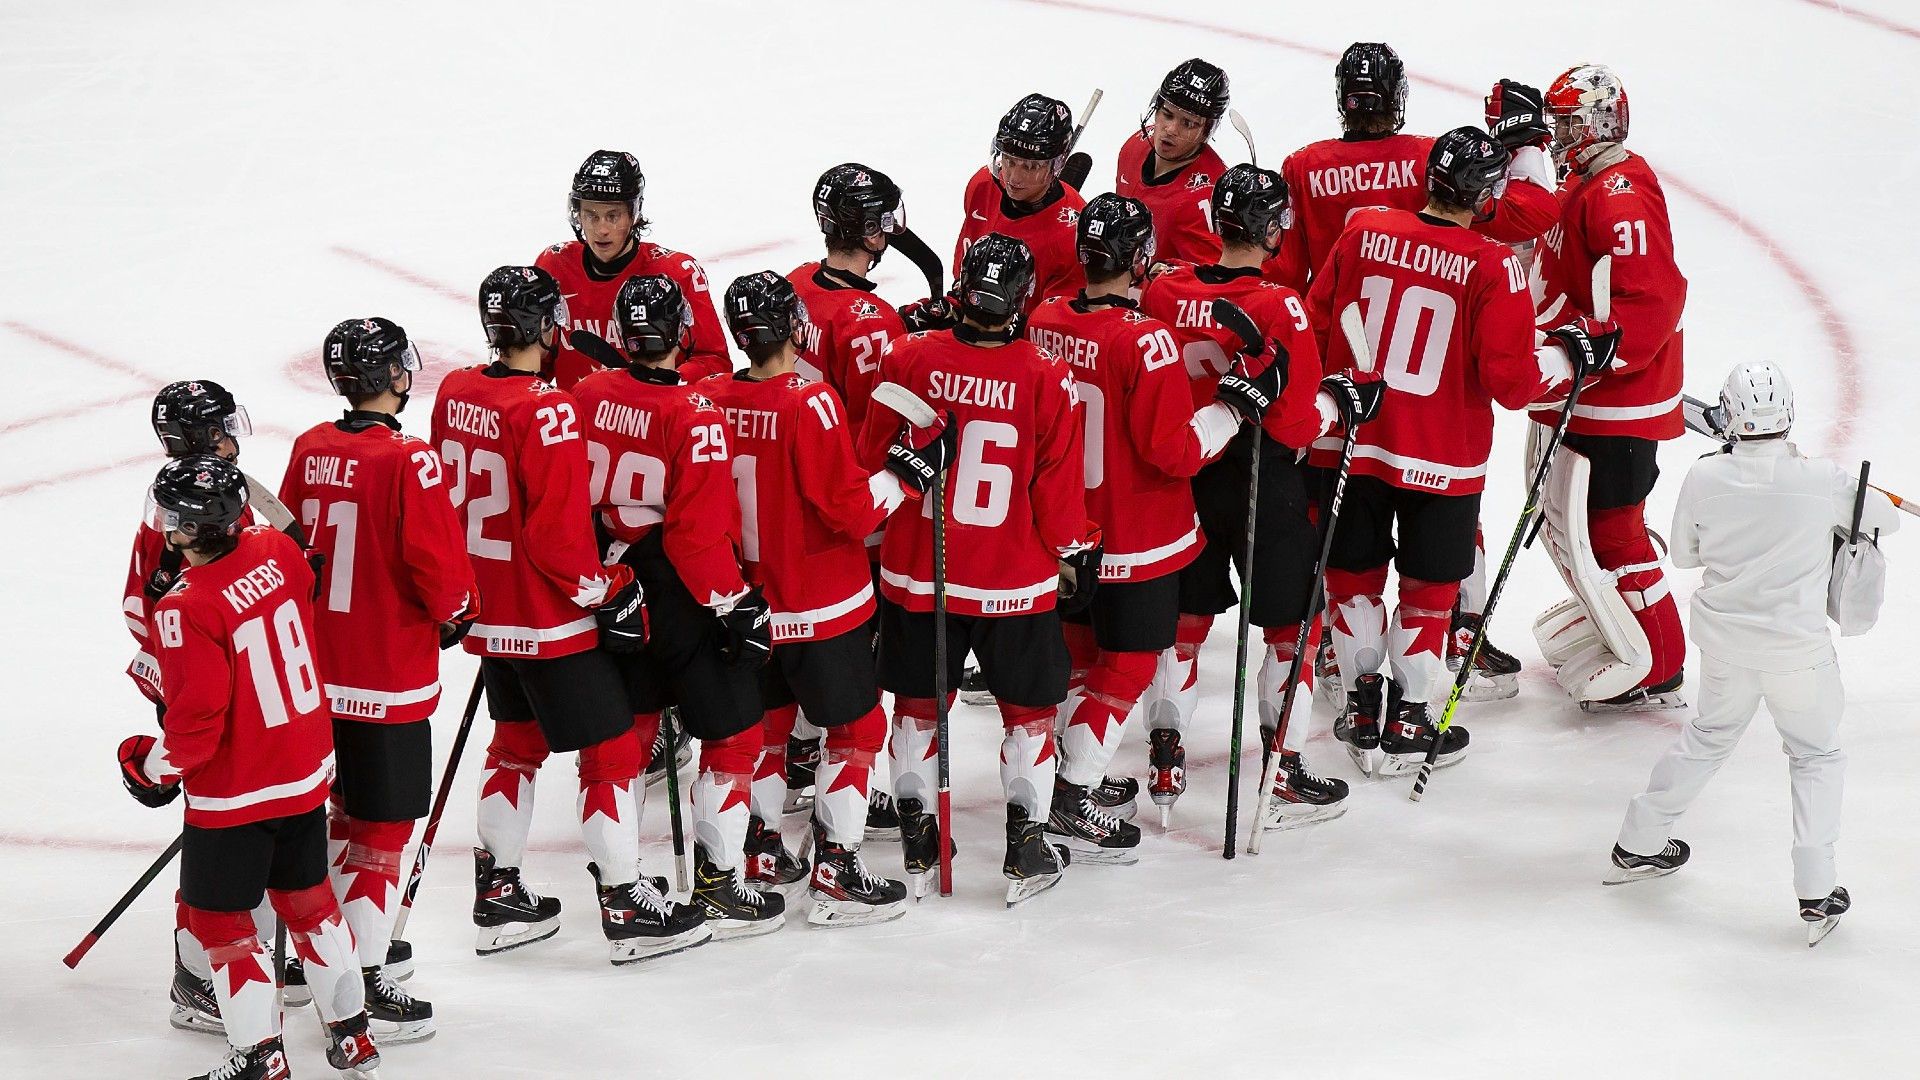 Canada vs. Slovakia result: Devon Levi shines in net as Canadians hold on for 3-1 win – Sporting News